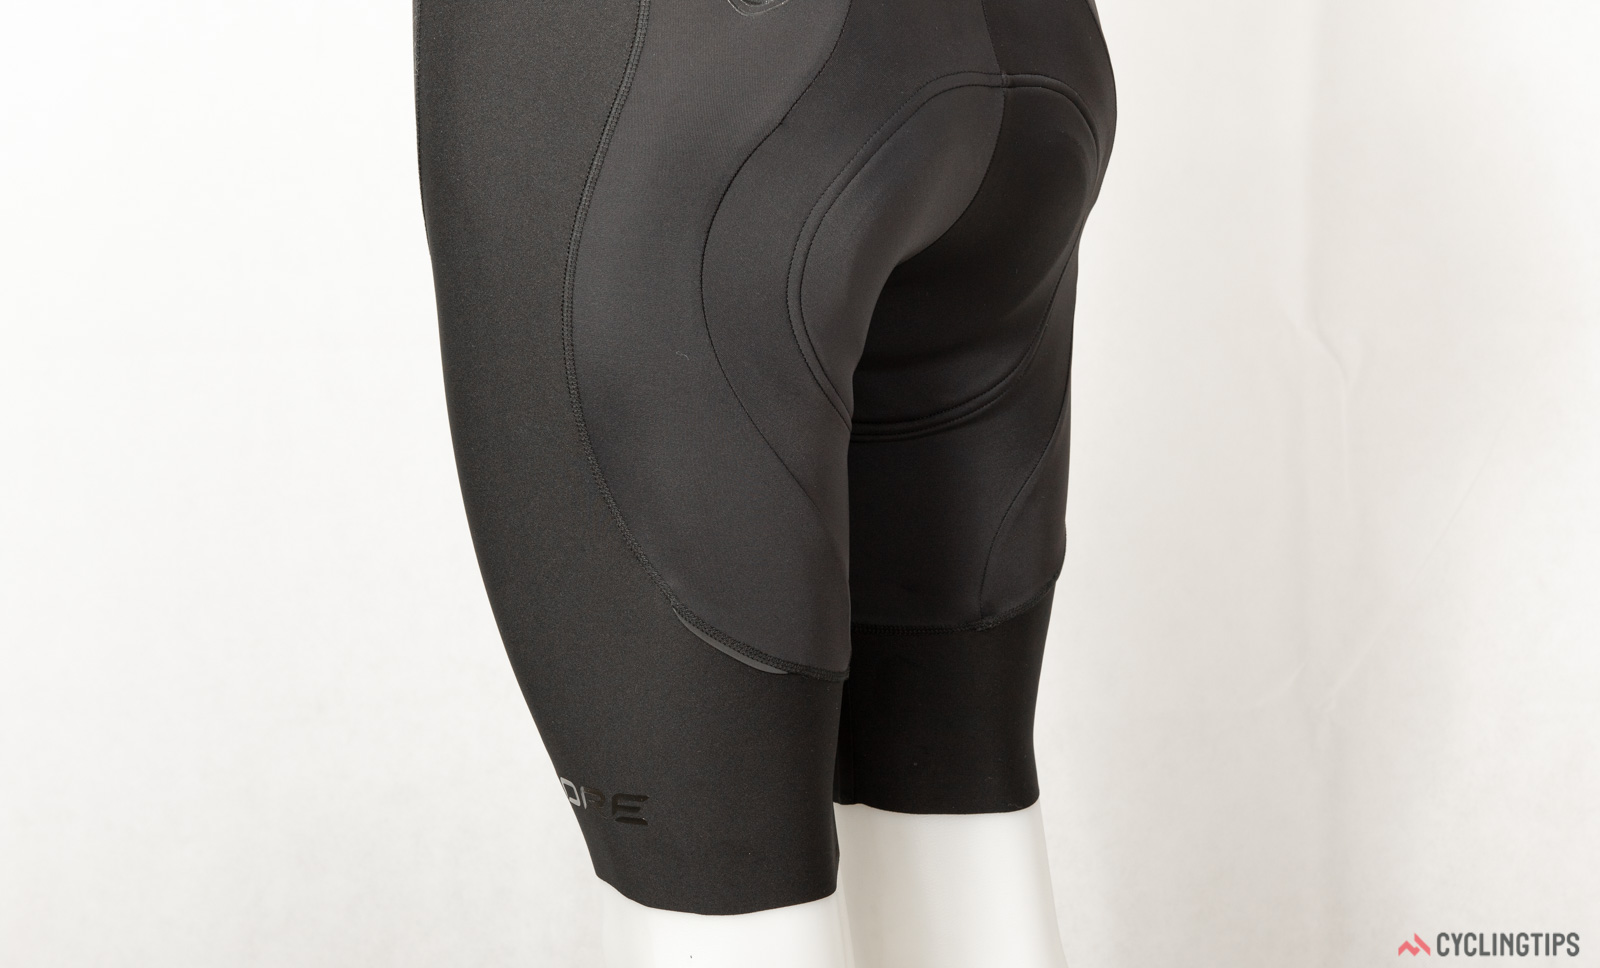 Cuore X1 Gold bib short review 2020